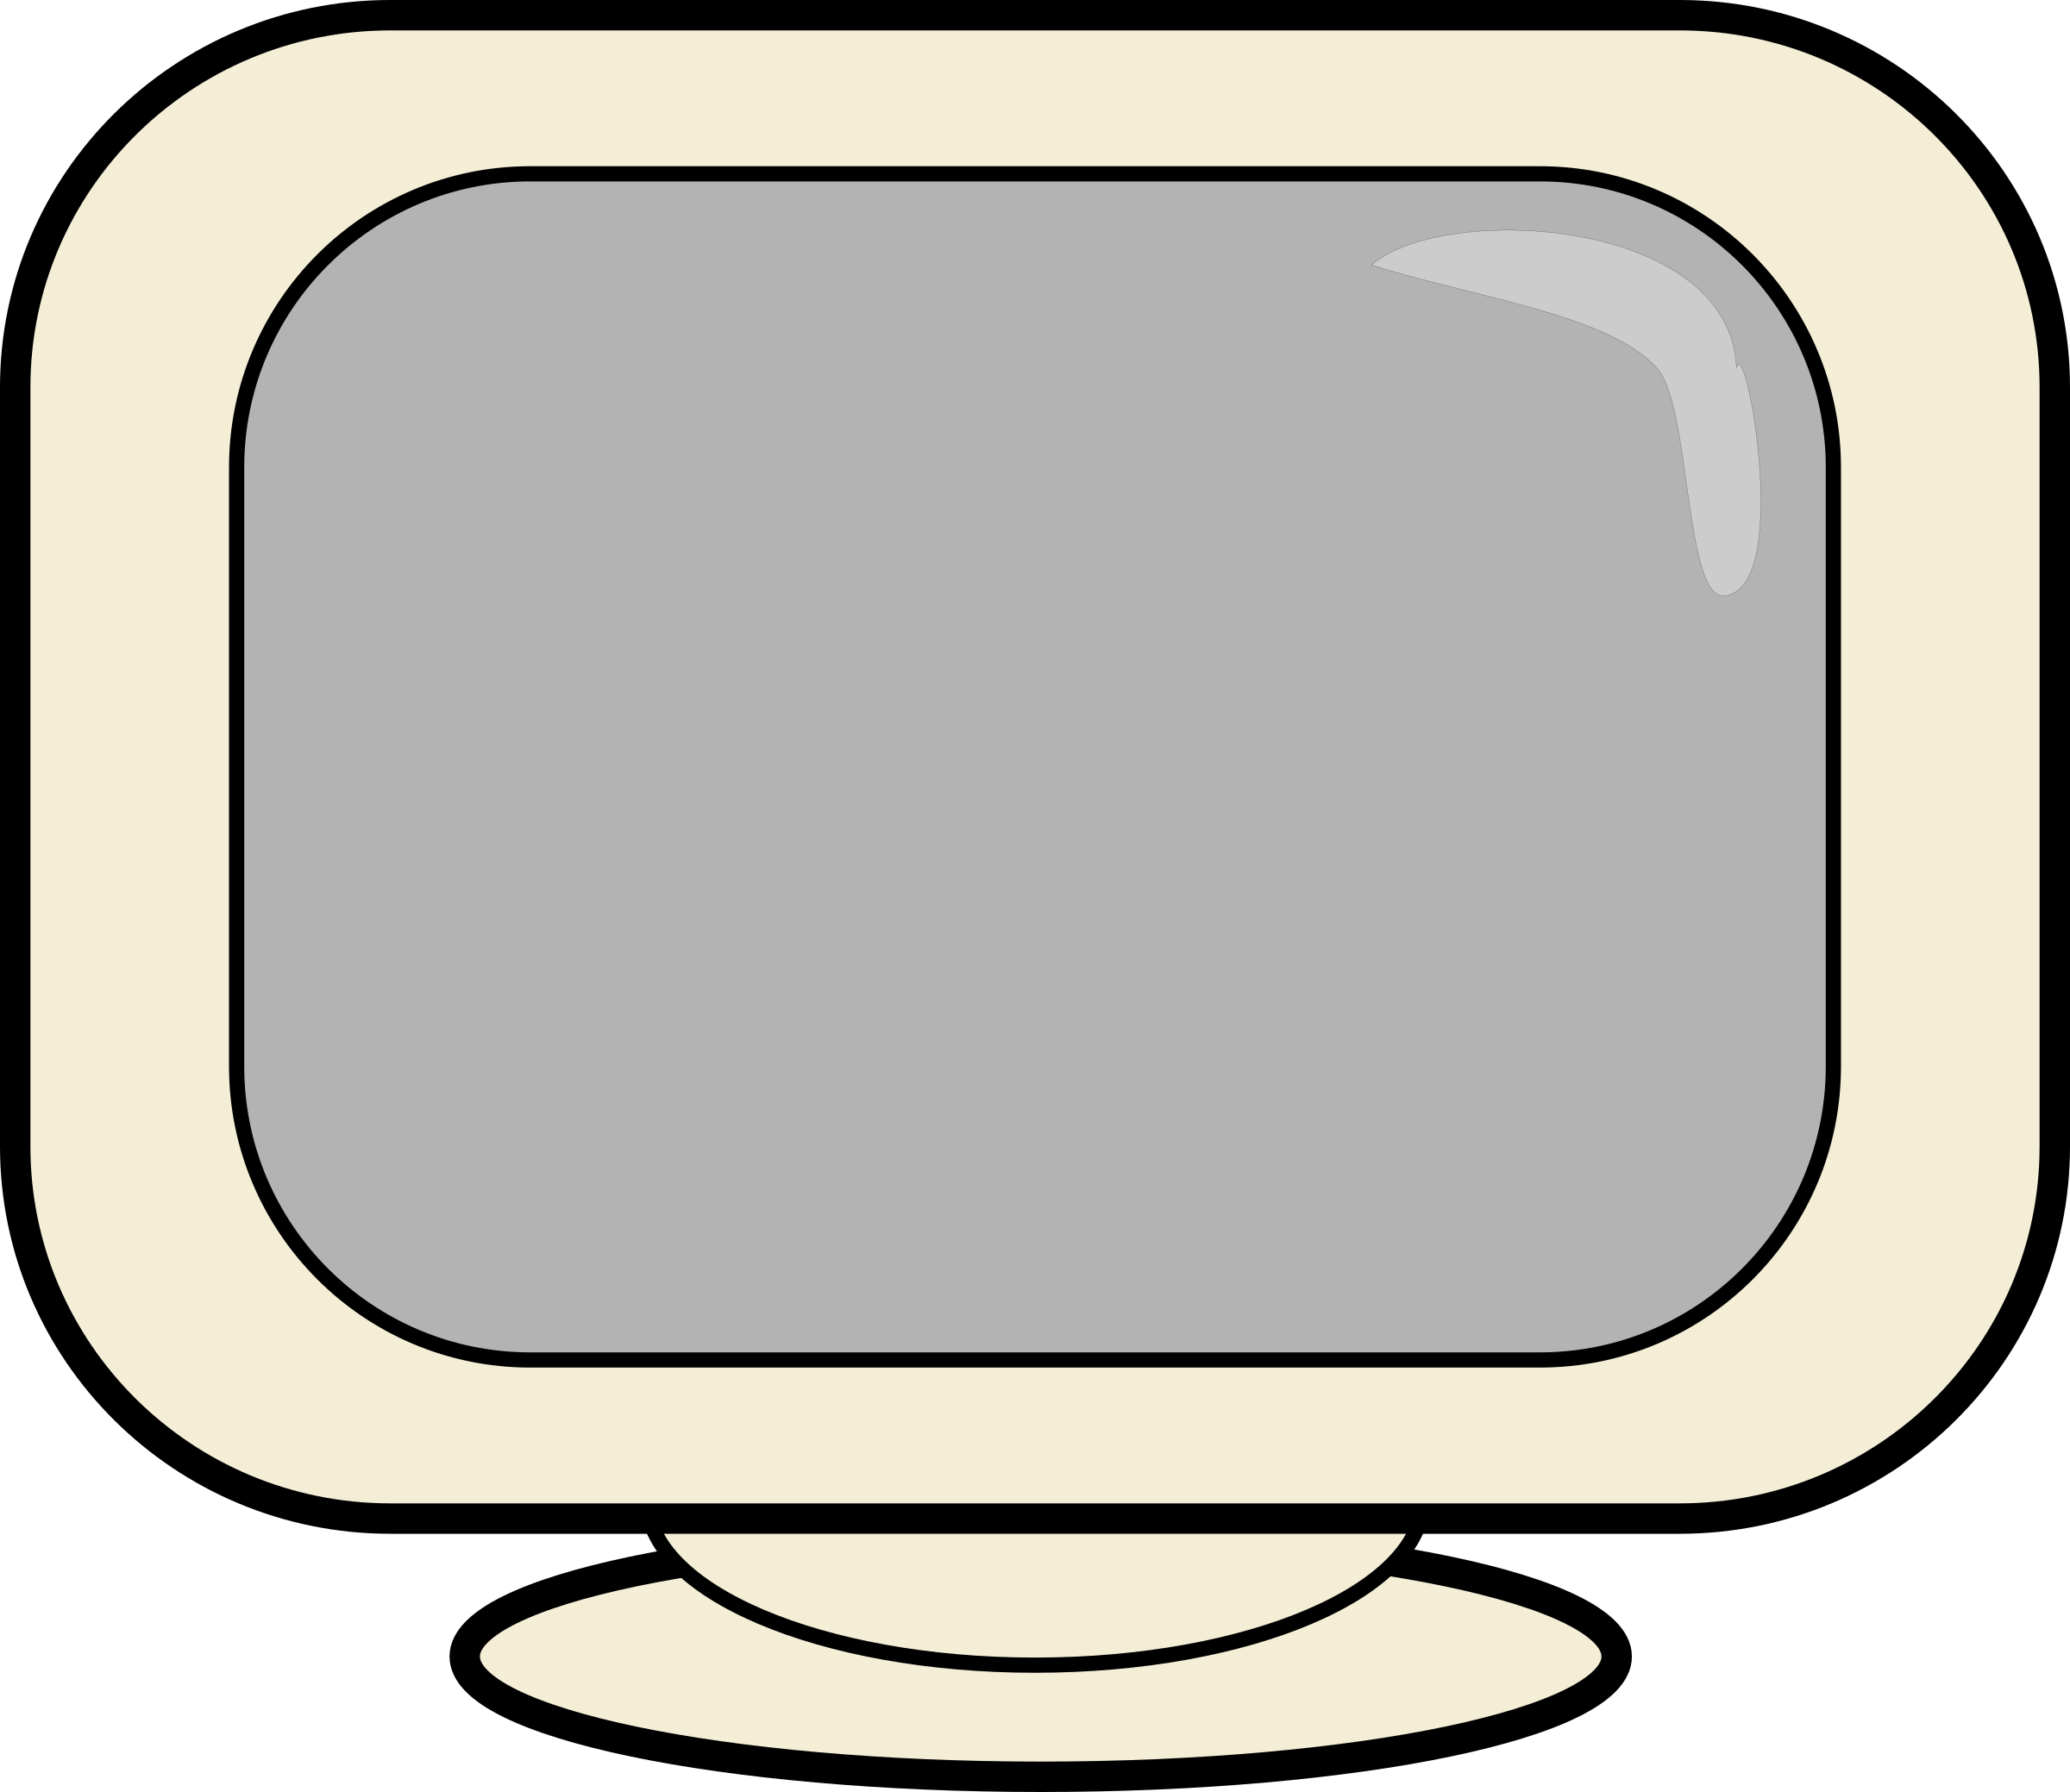 Big Screen Tv Clipart Displaying 13 Images For Big Screen Tv Clipart